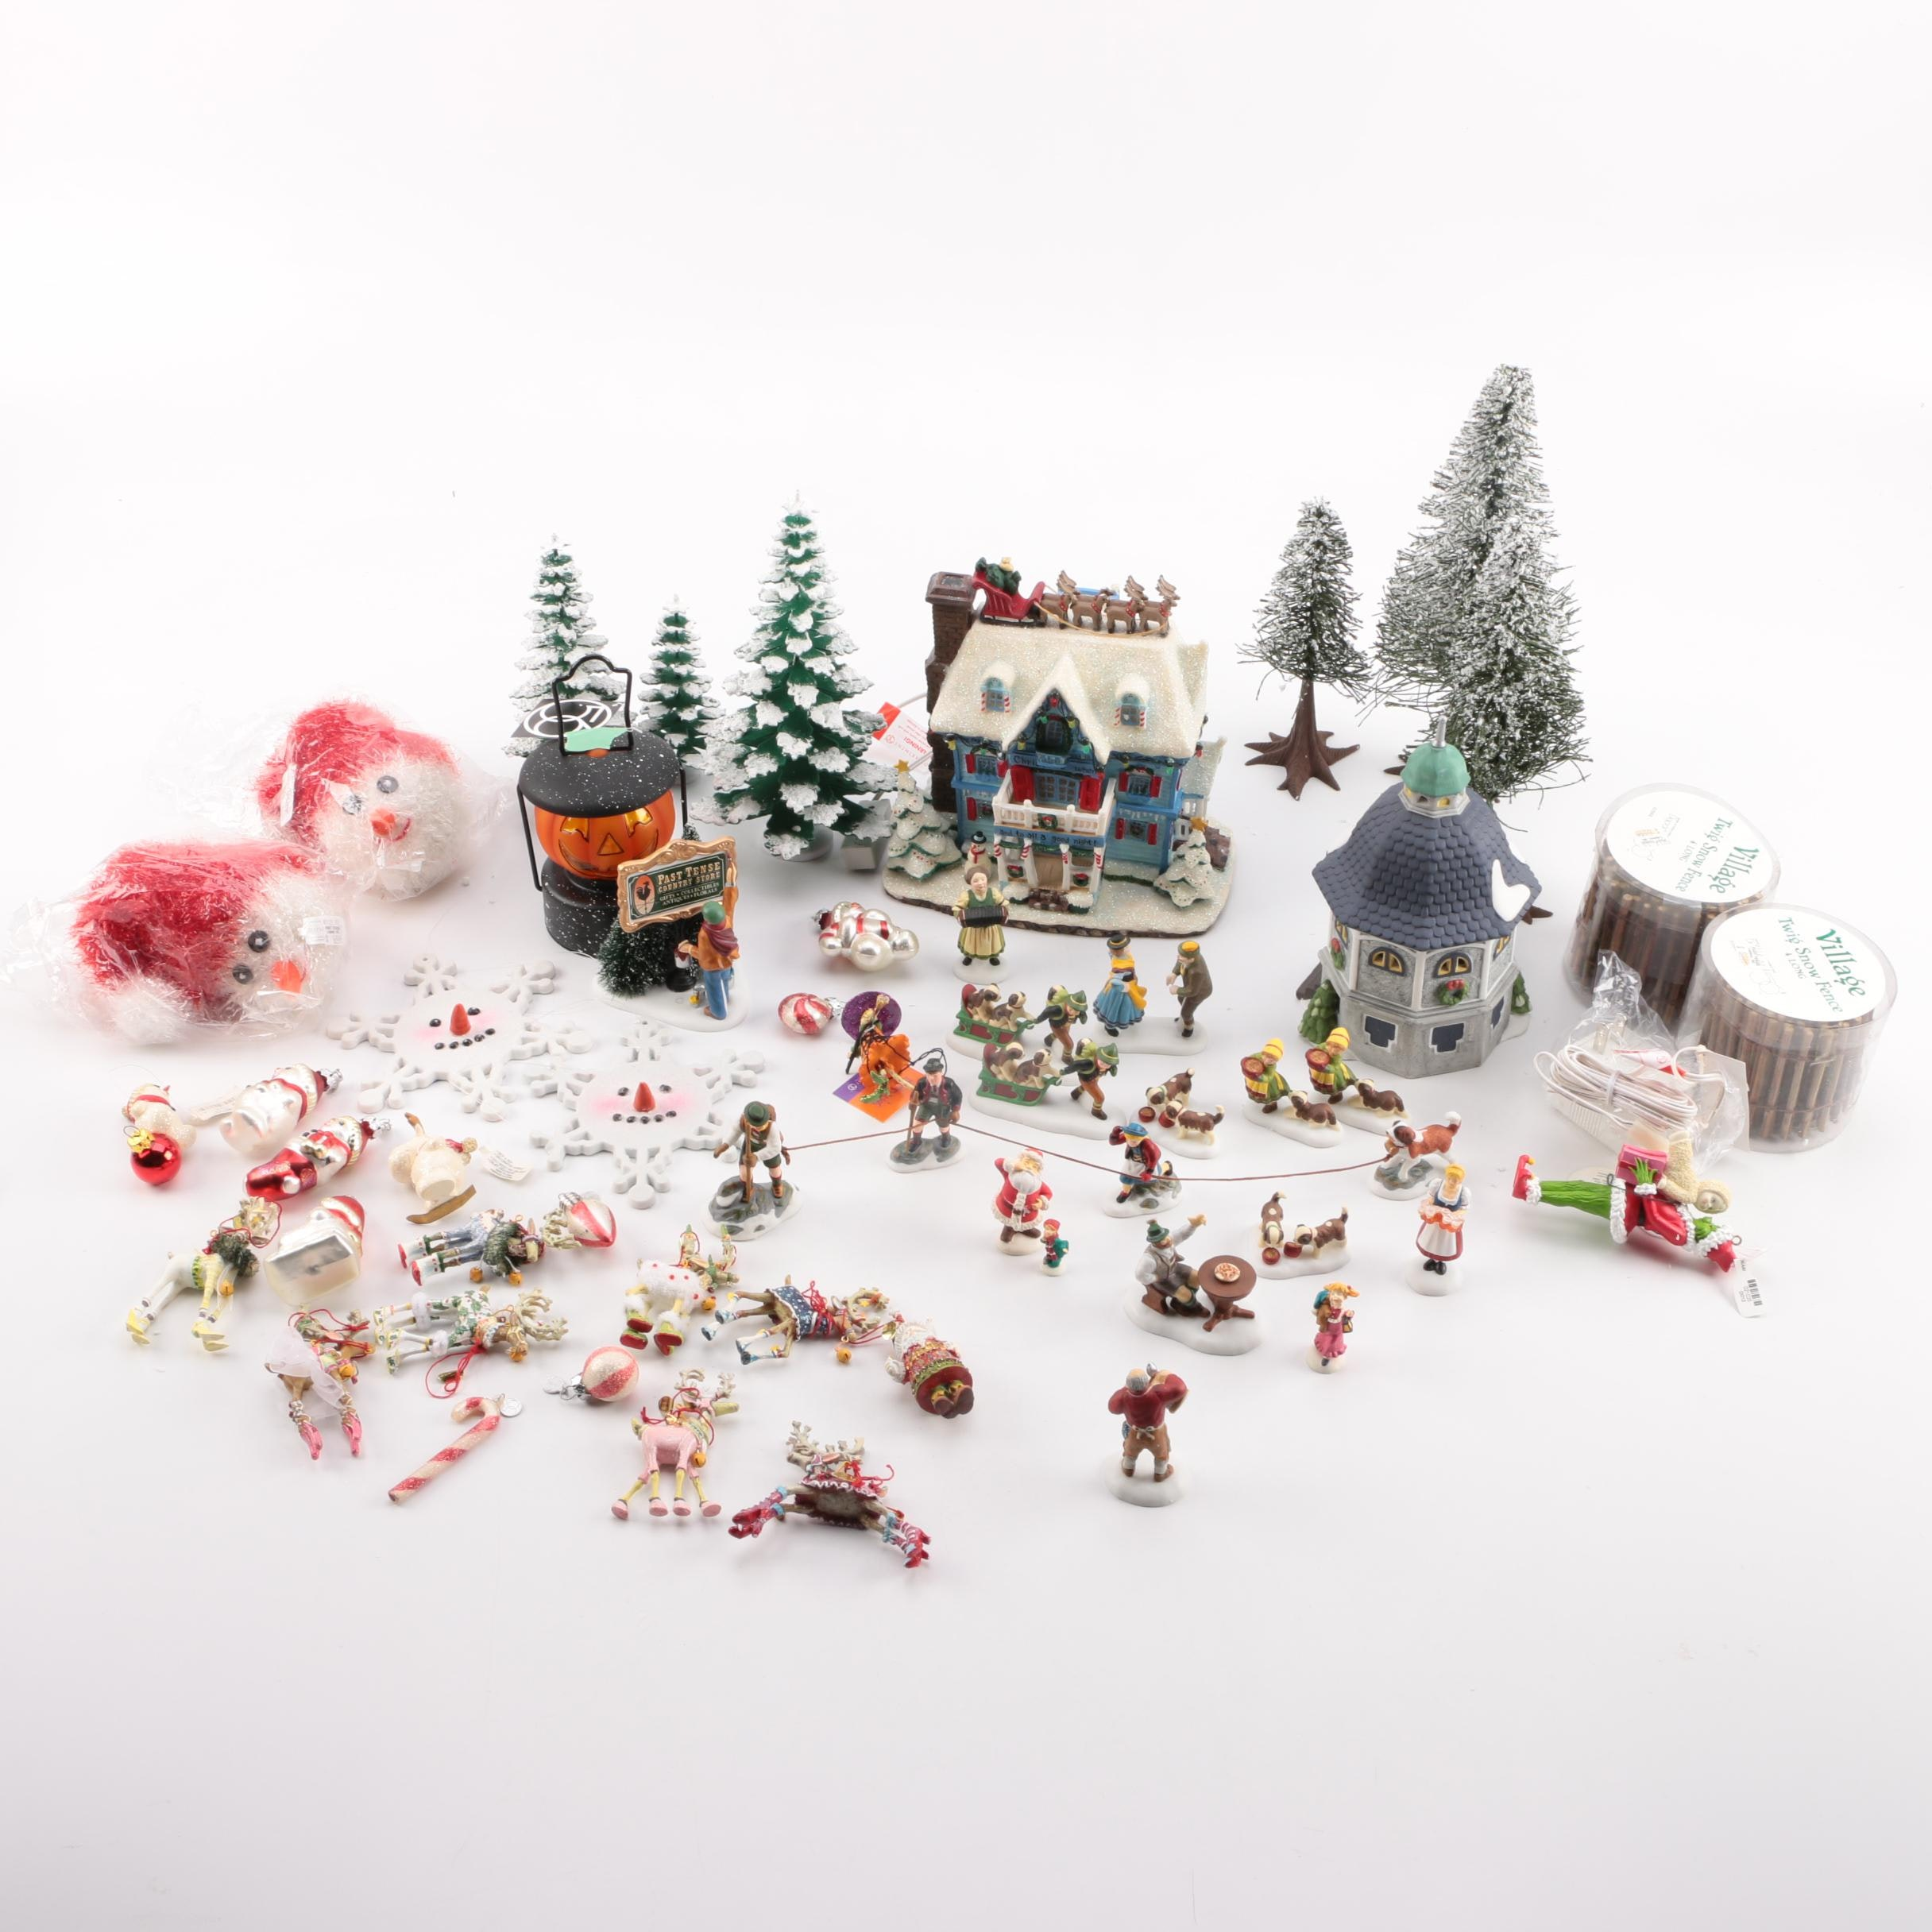 Dept. 56 Christmas Village and Other Christmas Decor